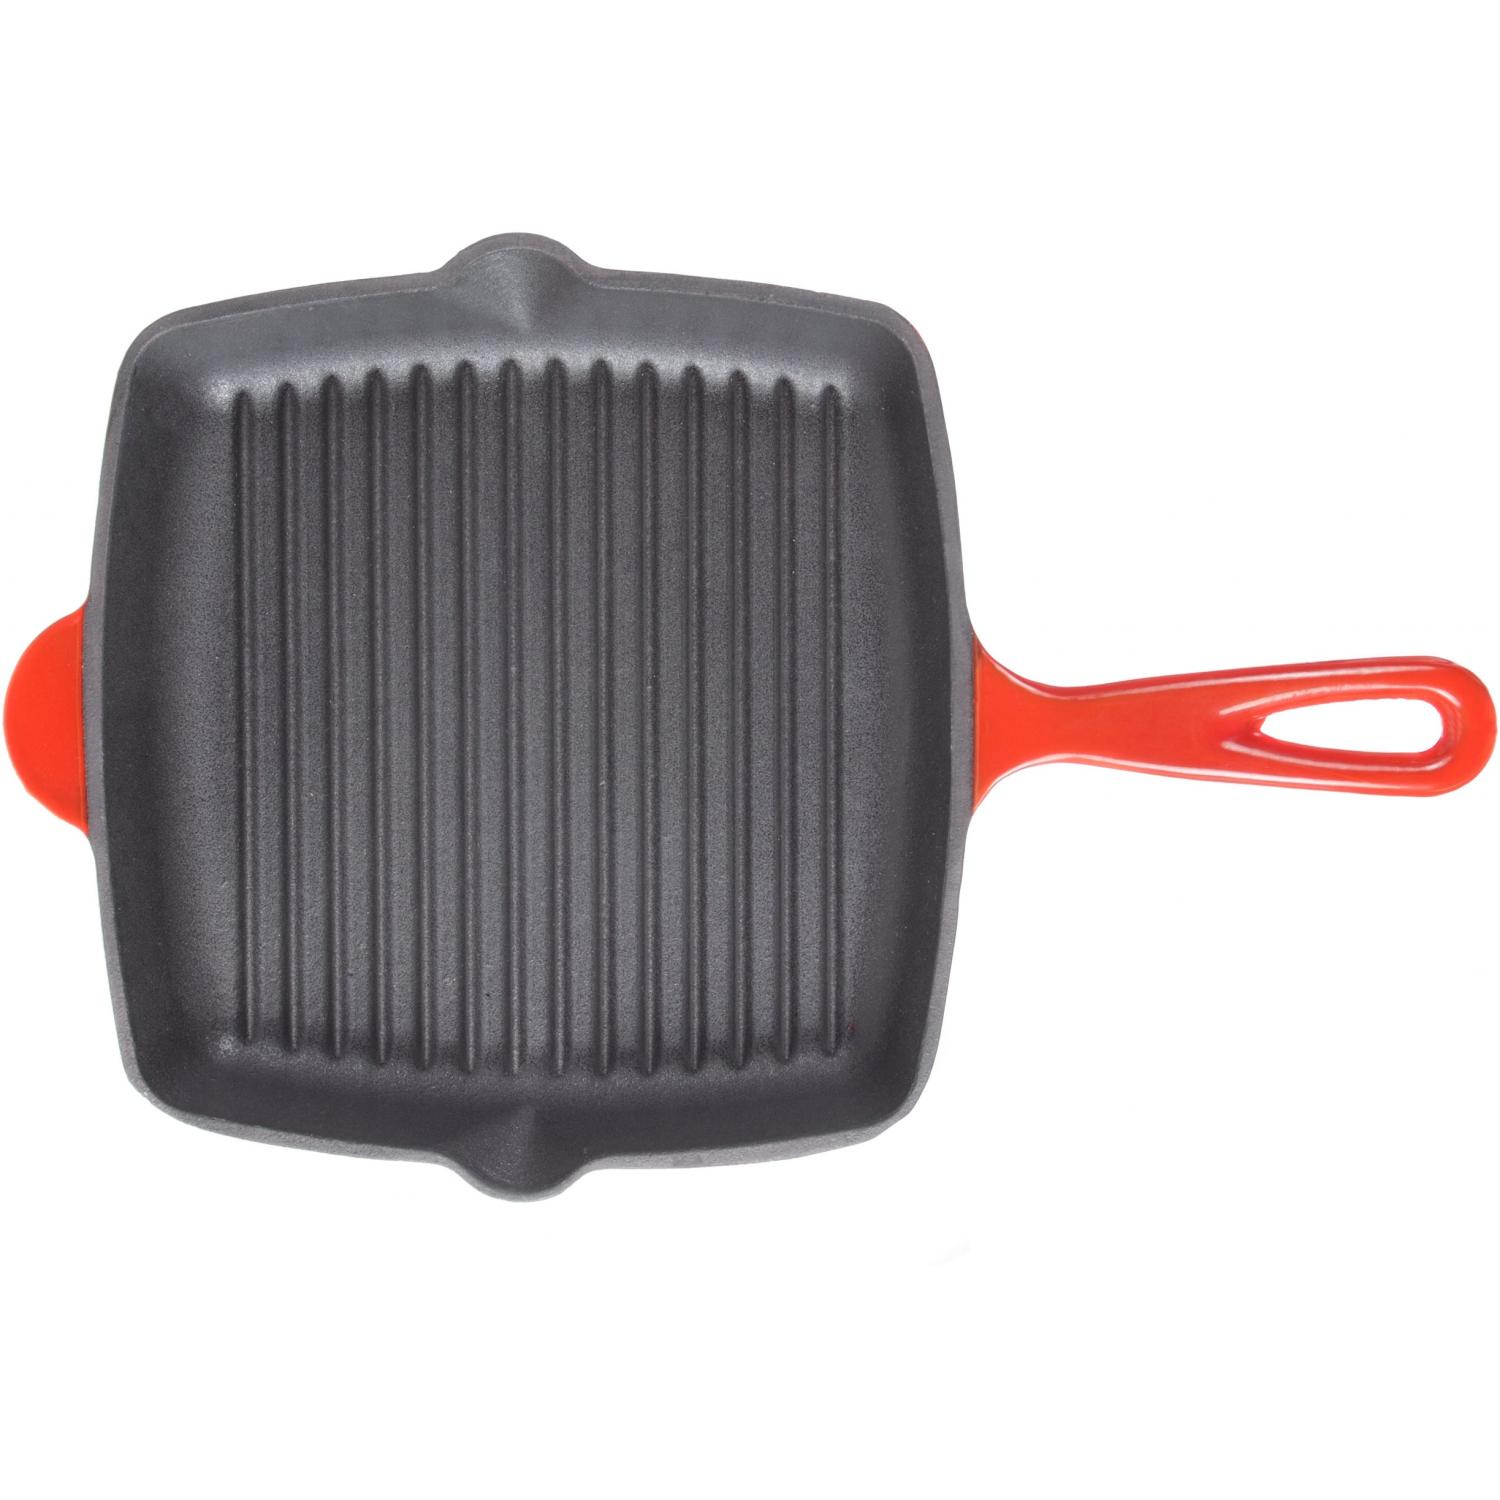 Cajun Cookware Pans 10 Inch Enamel Cast Iron Grill Pan - Red/Black